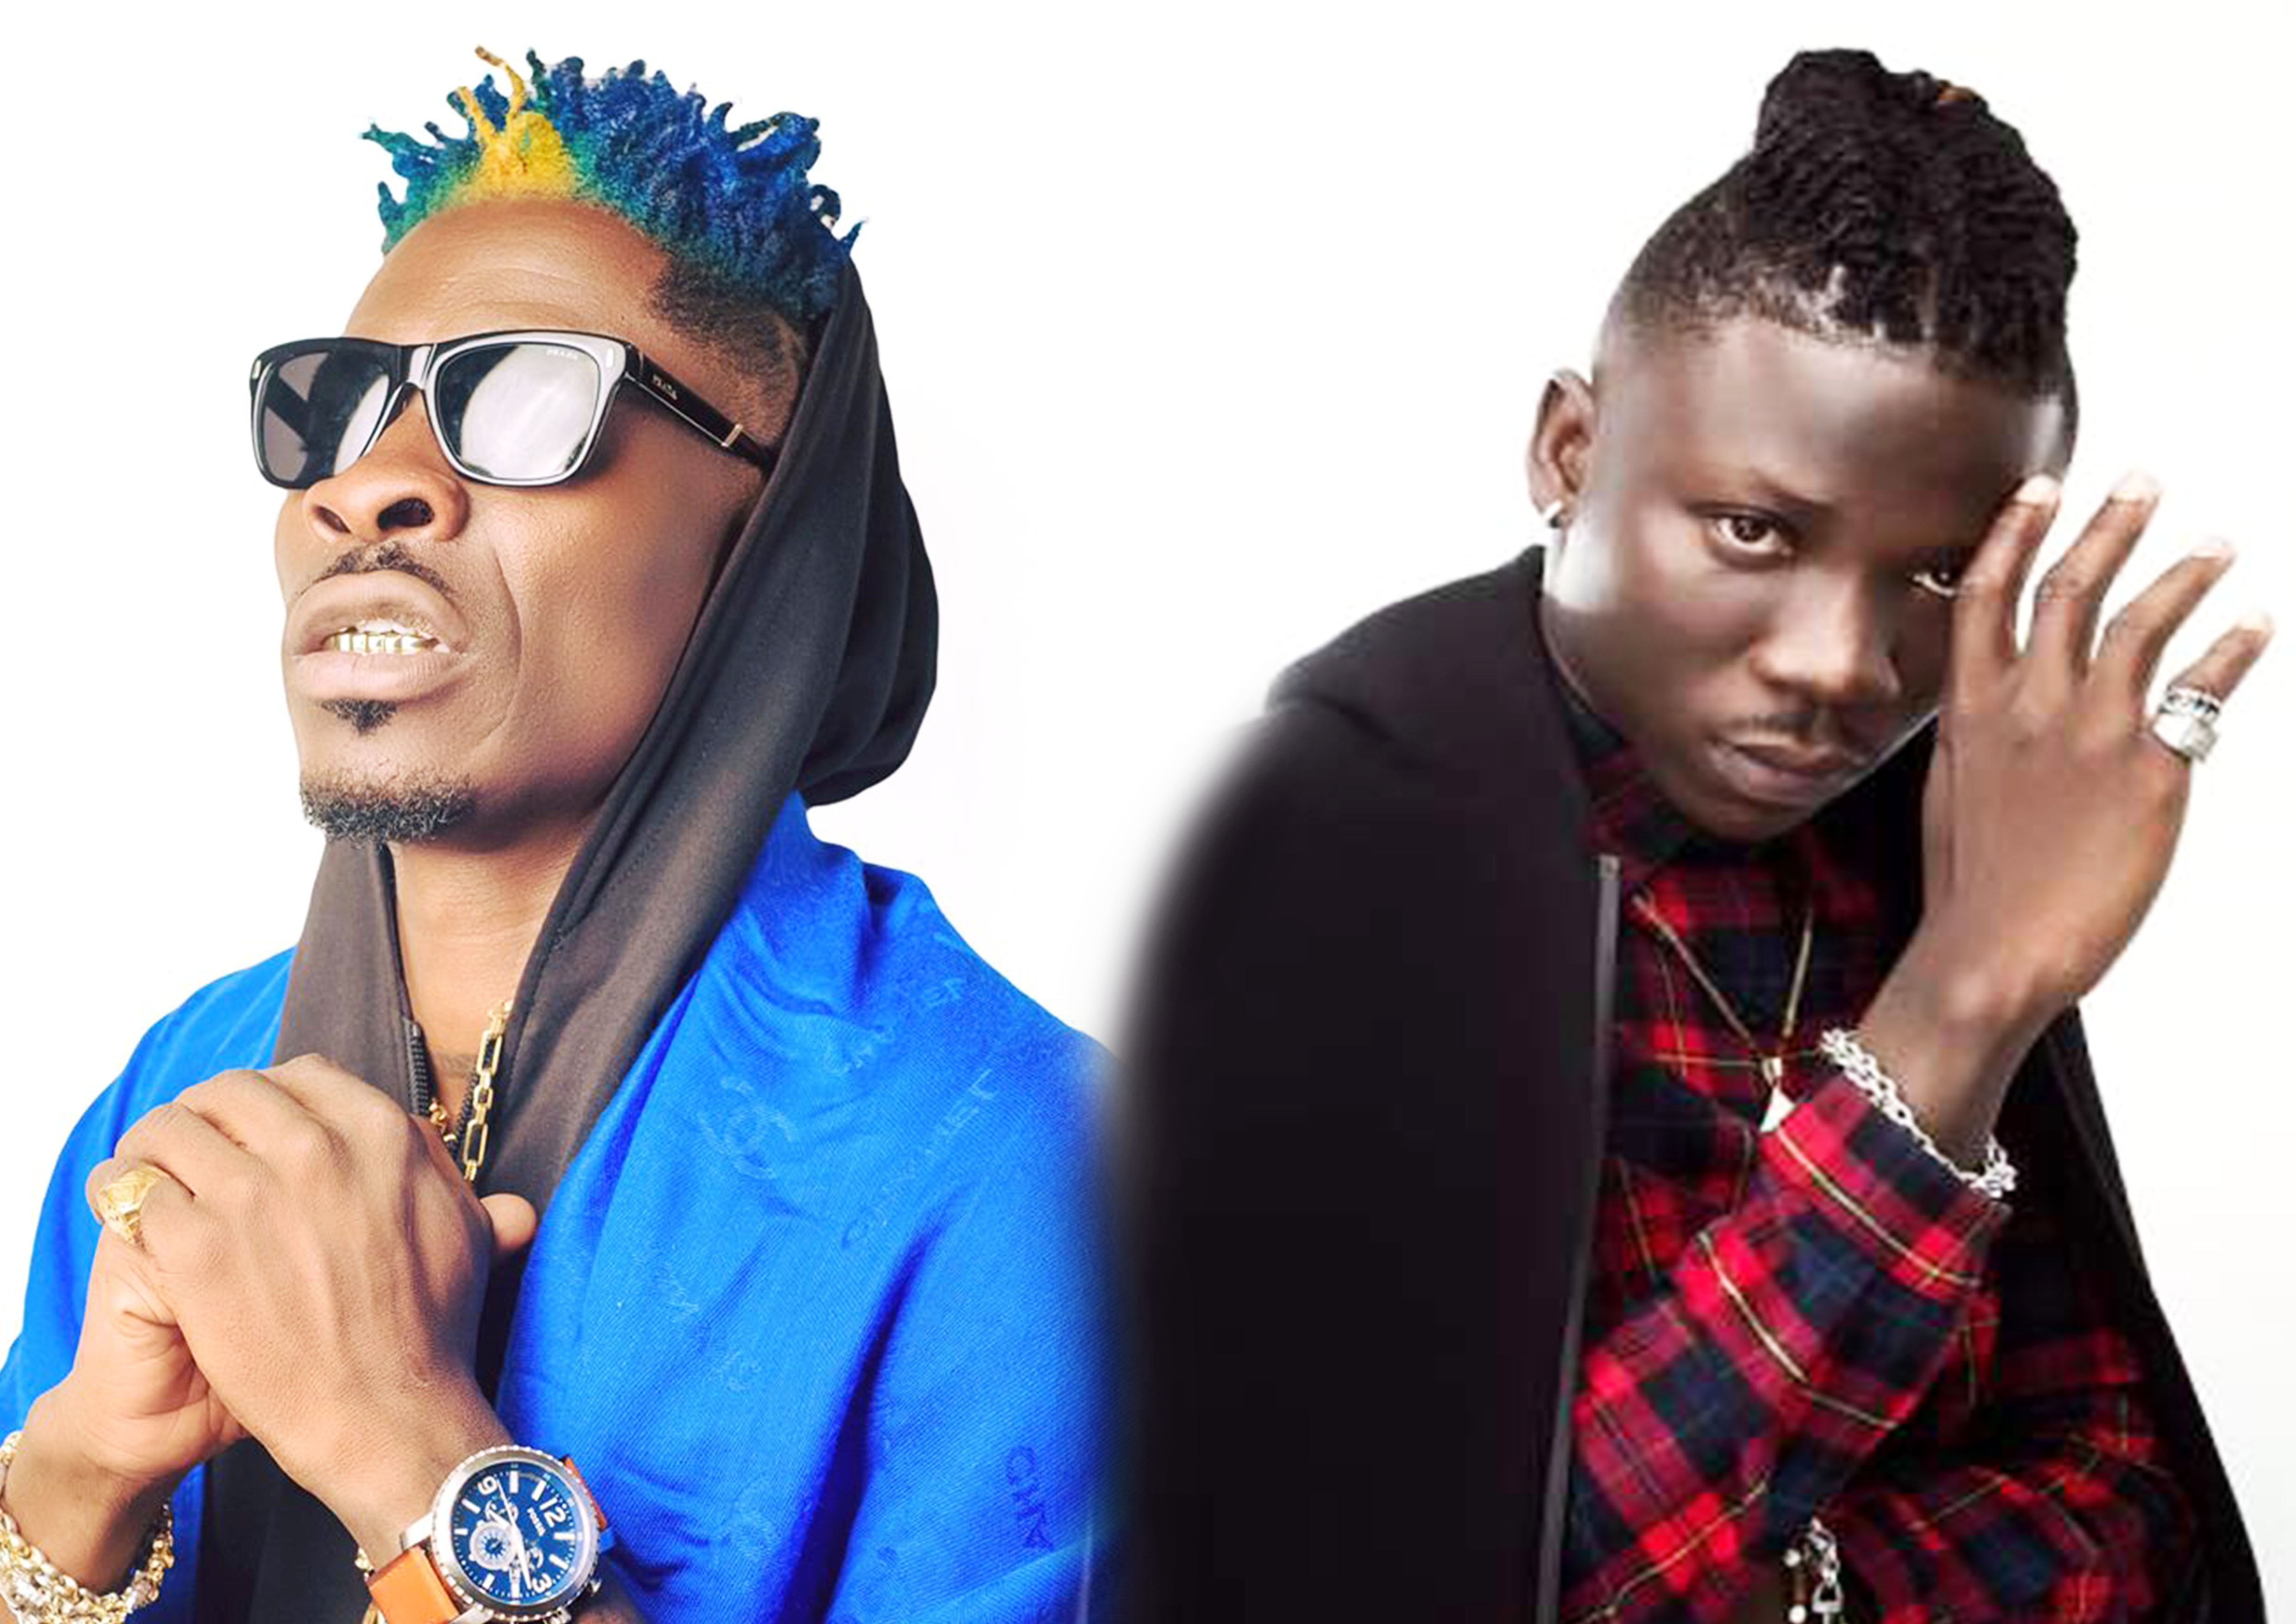 Shatta Wale Comments On Stonebwoy's #FillTheDome Concert